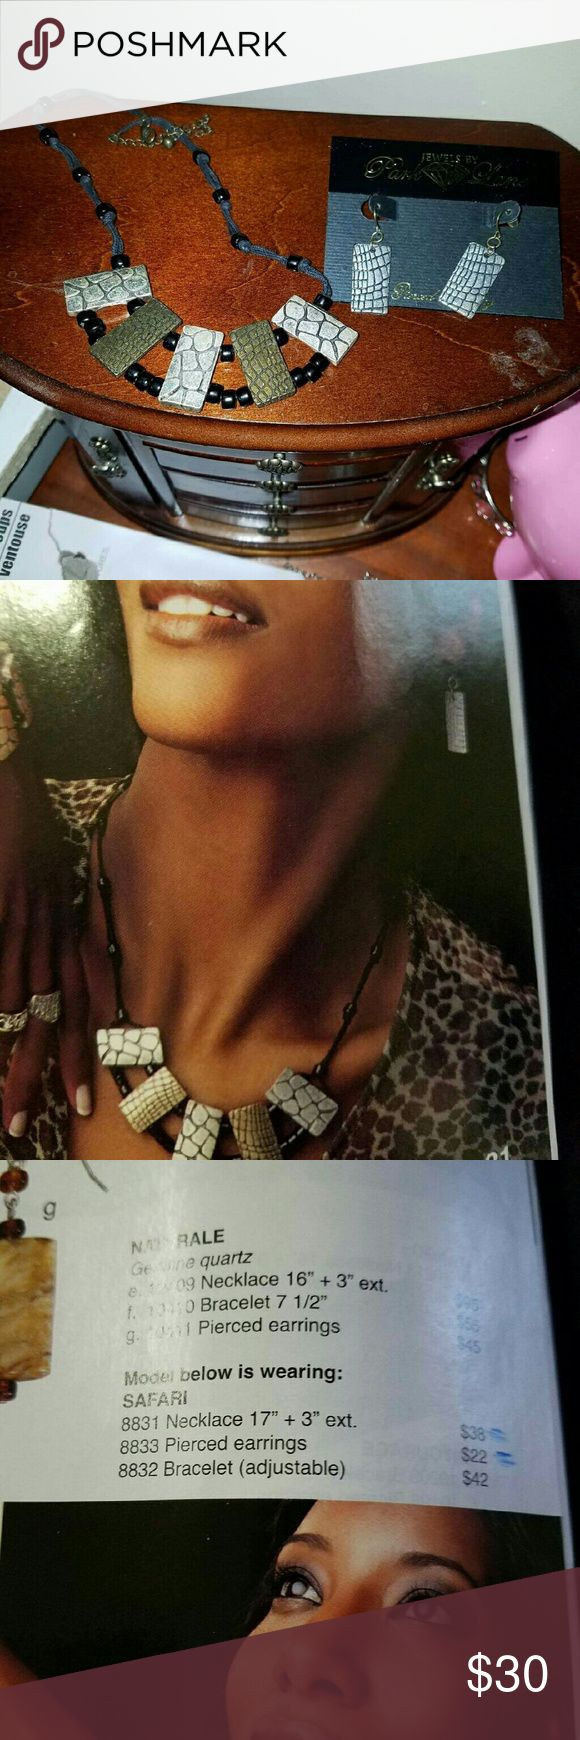 Necklace and earings Safari style. Park Lane Jewelry